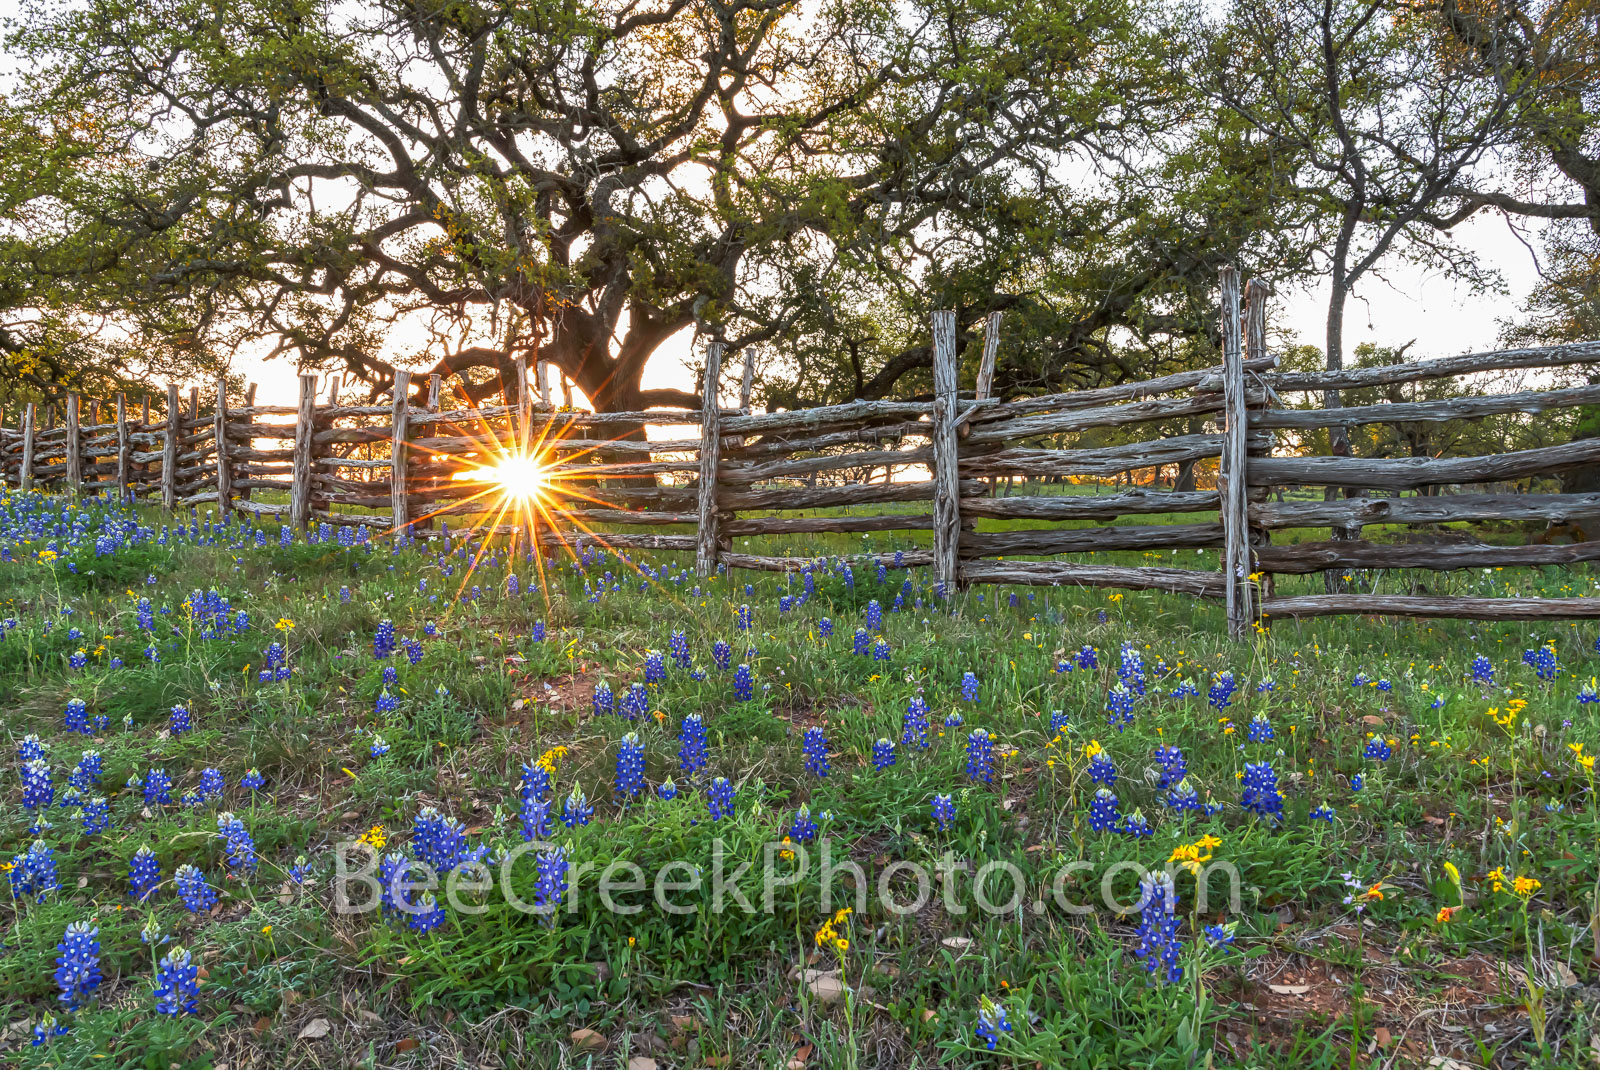 texas bluebonnets, texas wildflowers, wood fence, sunset, sun rays, bluebonnets, texas bluebonnet landscape, lupines, light, abundant, field, texas hill country, hill country, natural setting, texas w, photo